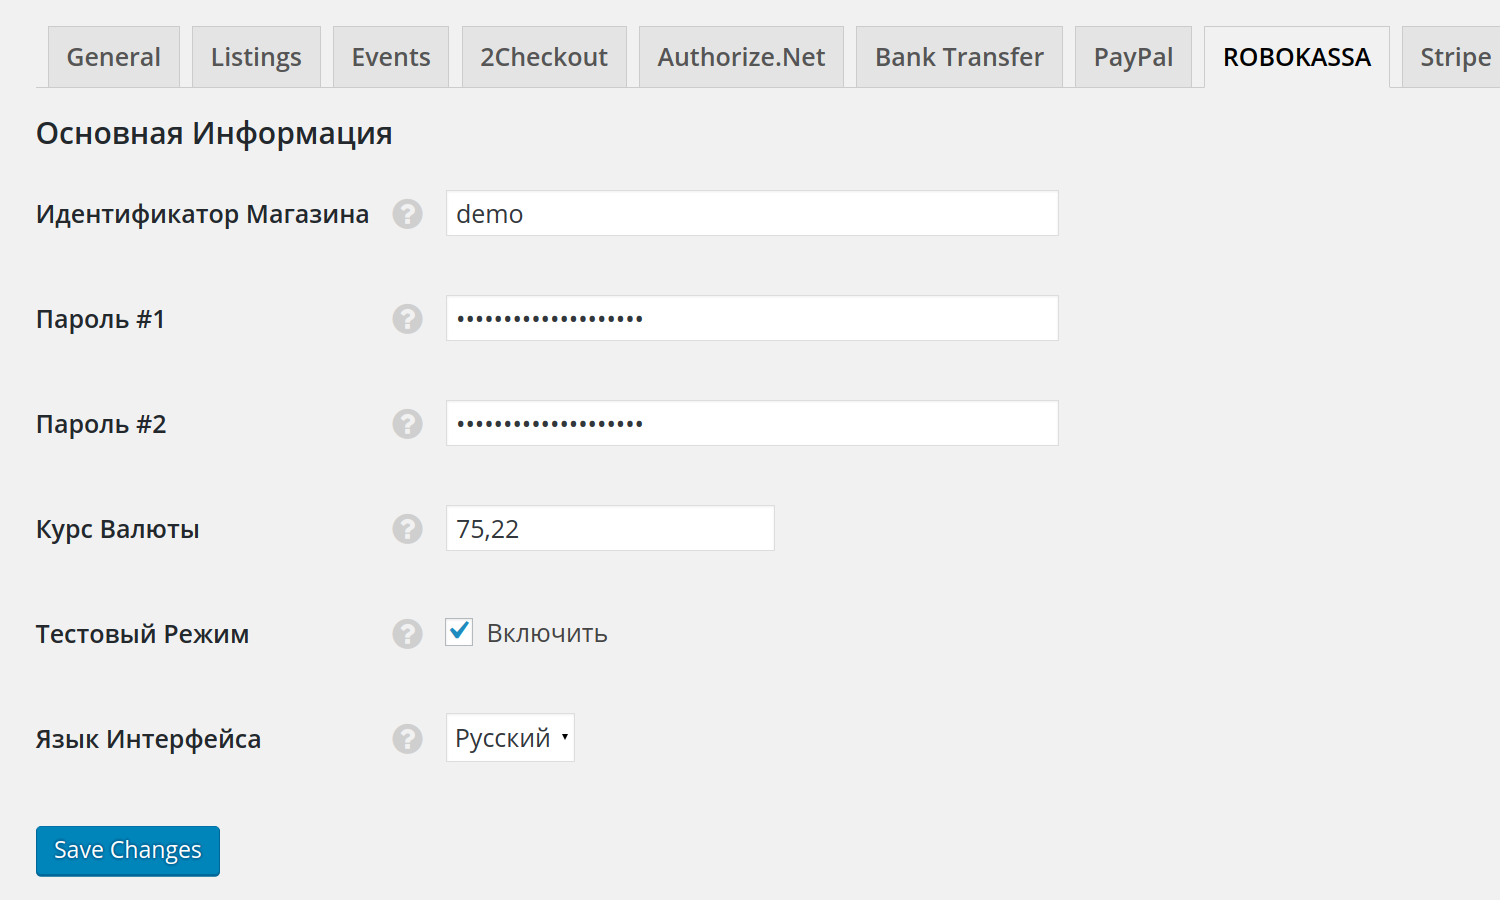 ROBOKASSA Payment Gateway Settings